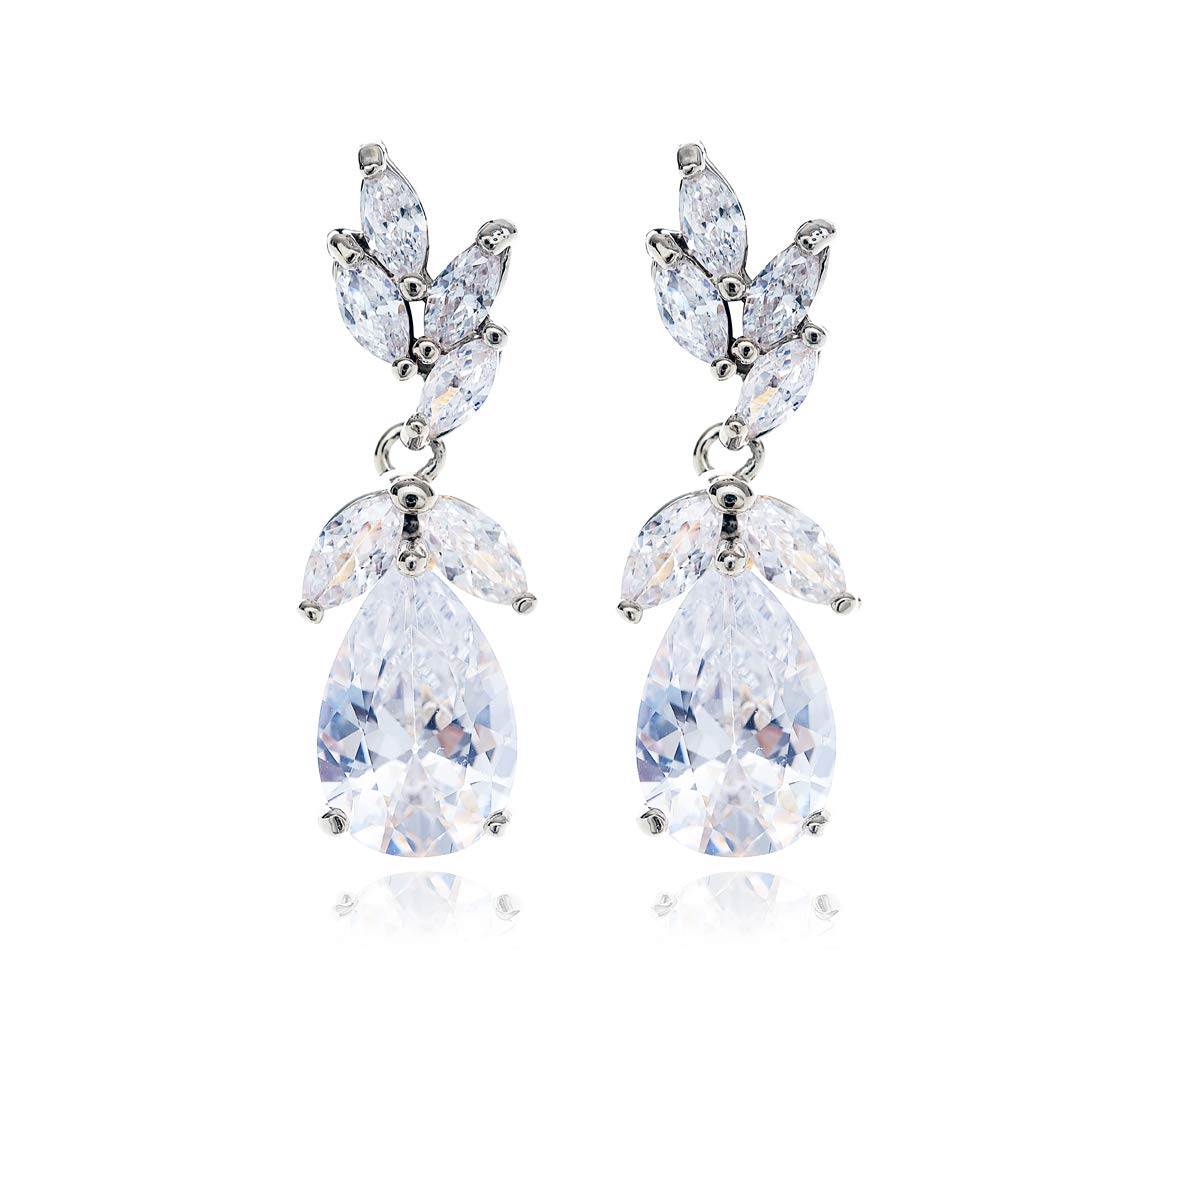 Silver Bridal Earring for Women - Elegant Teardrop Cubic Zirconia Cluster Floral Leaf CZ Crystal Rhinestone Wedding Earring for Bride Bridesmaids Mother of Bride Party Prom by AMYJANE